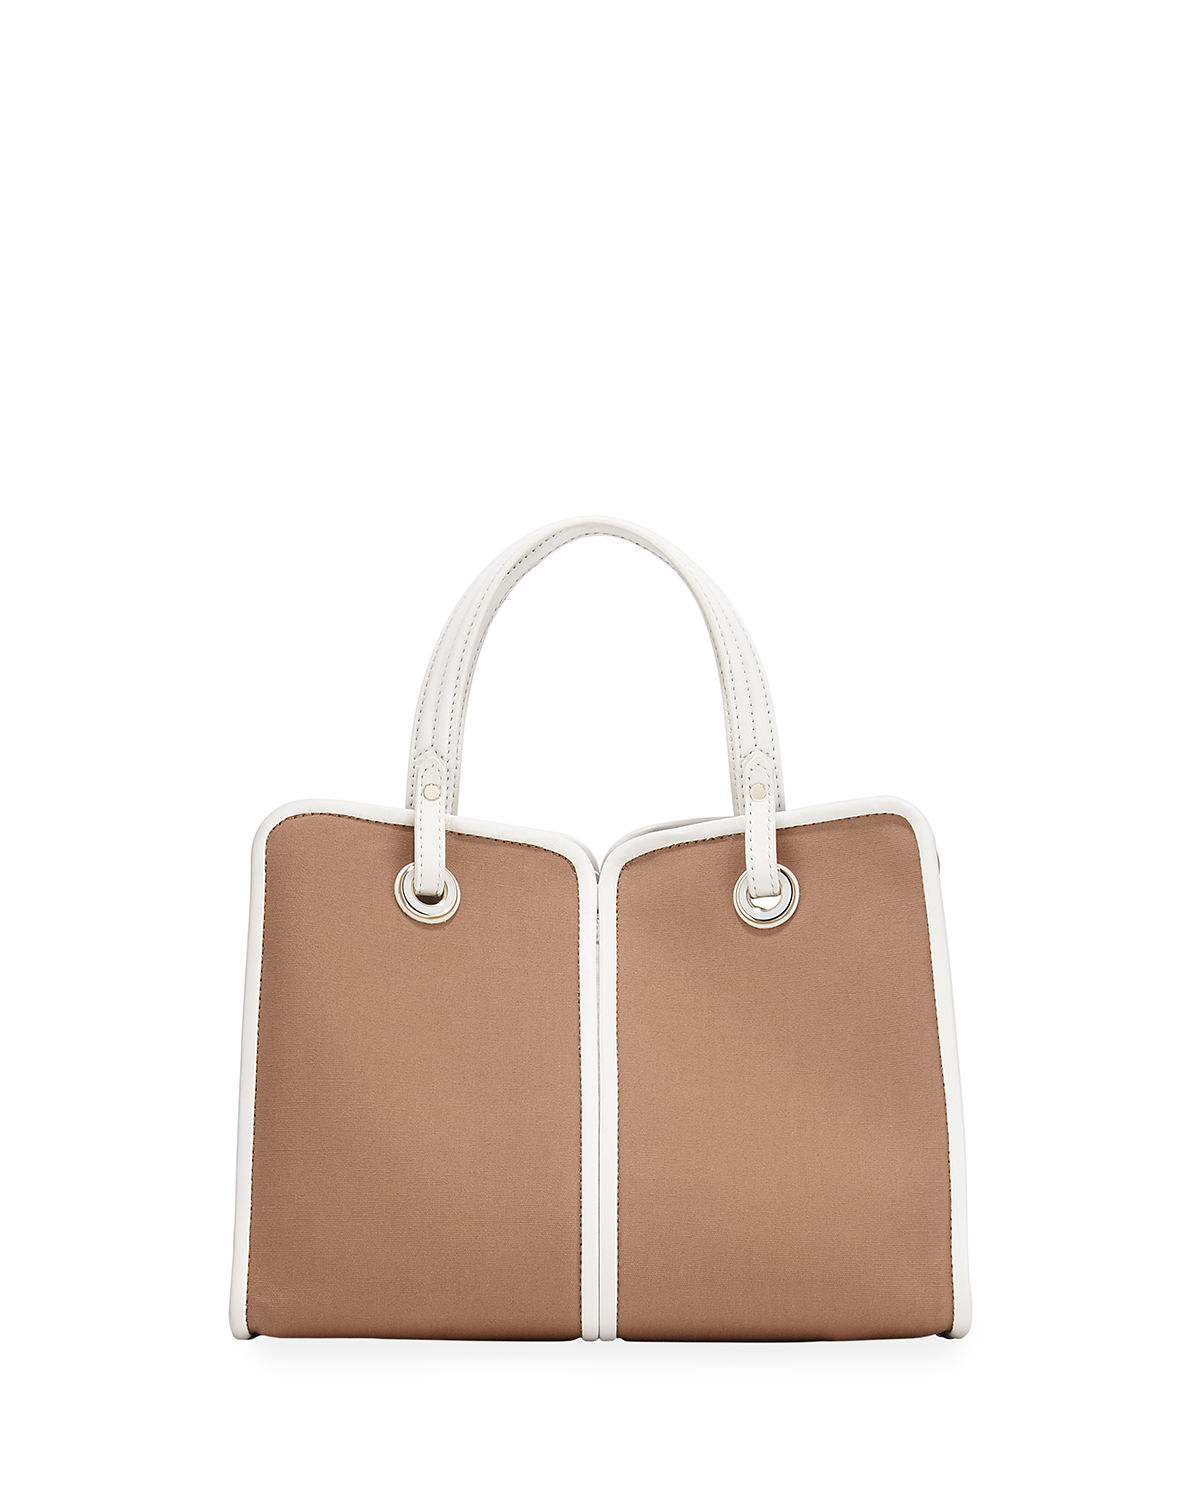 Two Tone Medium Canvas Satchel Bag by Kate Spade New York